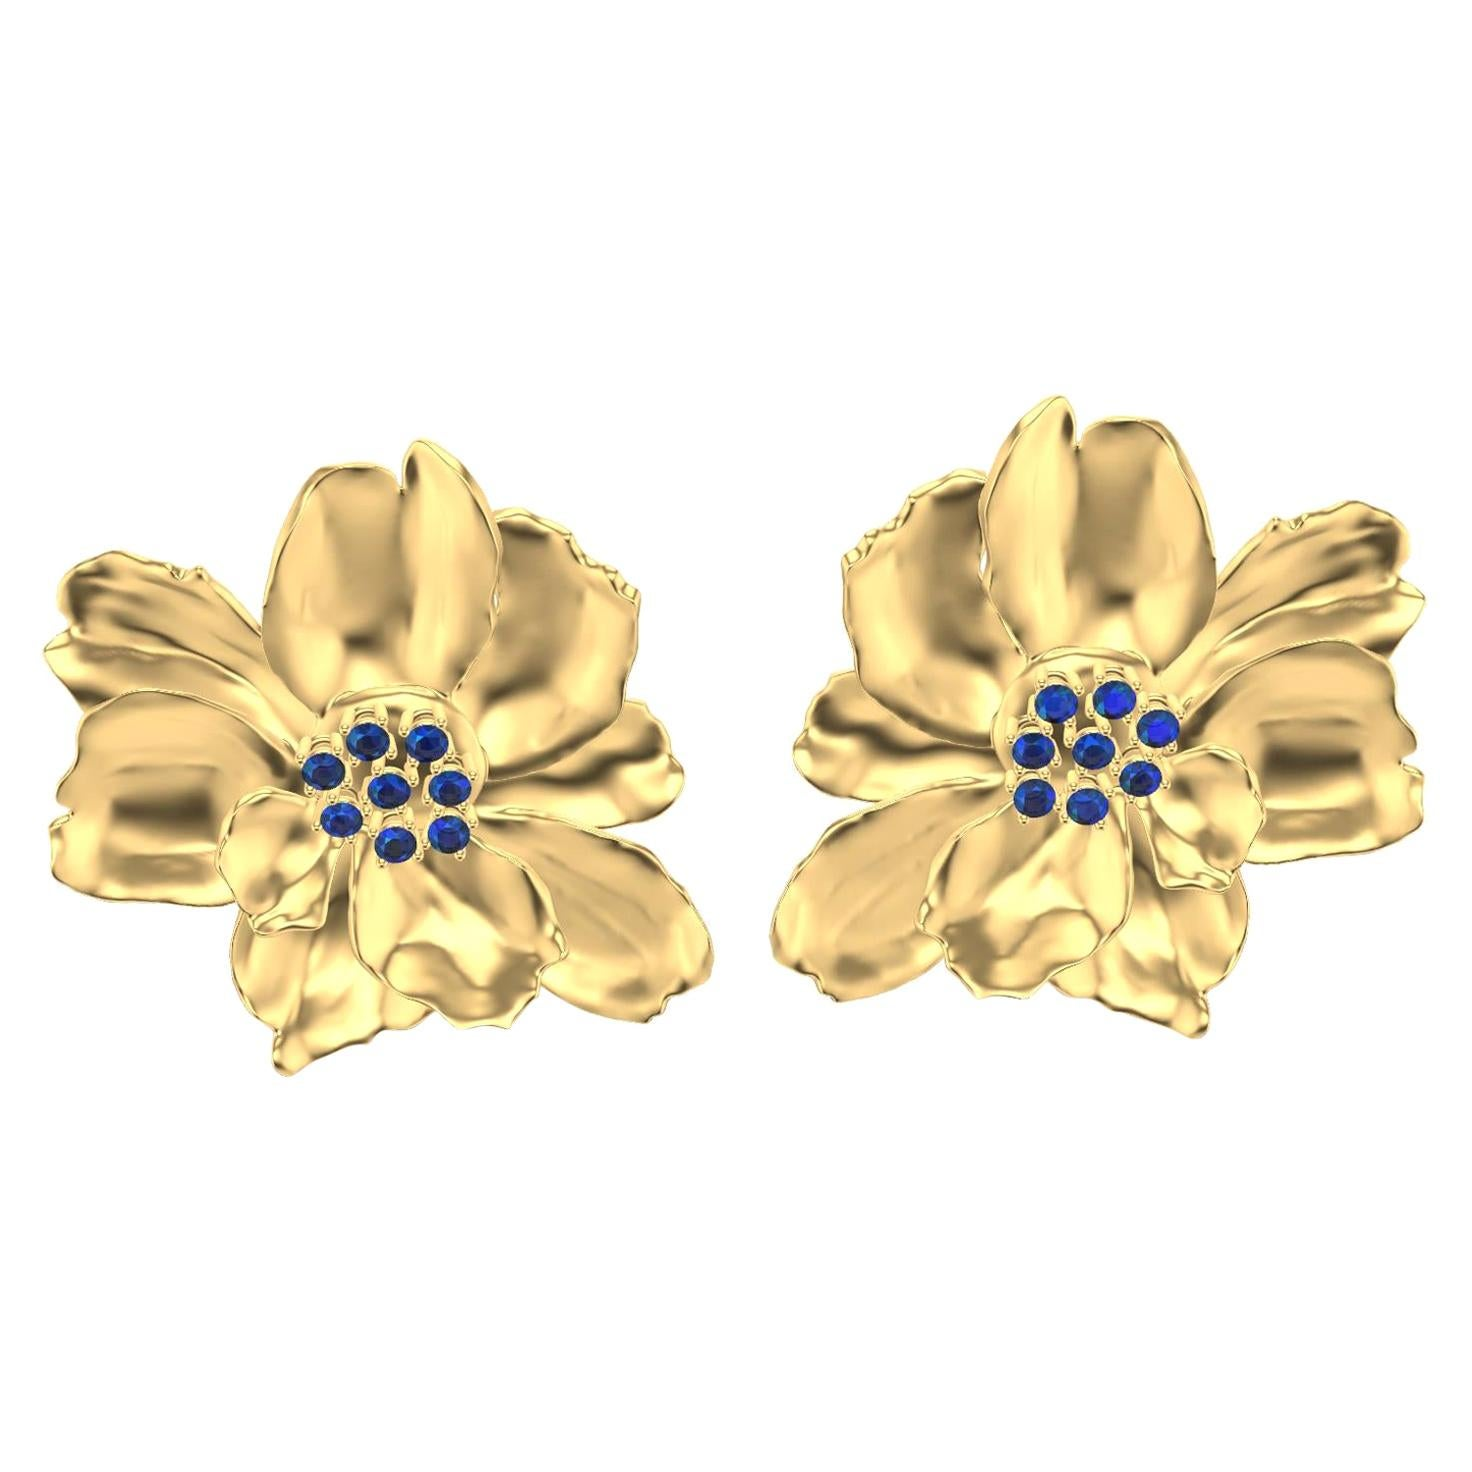 14 Karat Yellow Gold Wild Flower Earrings with Sapphires